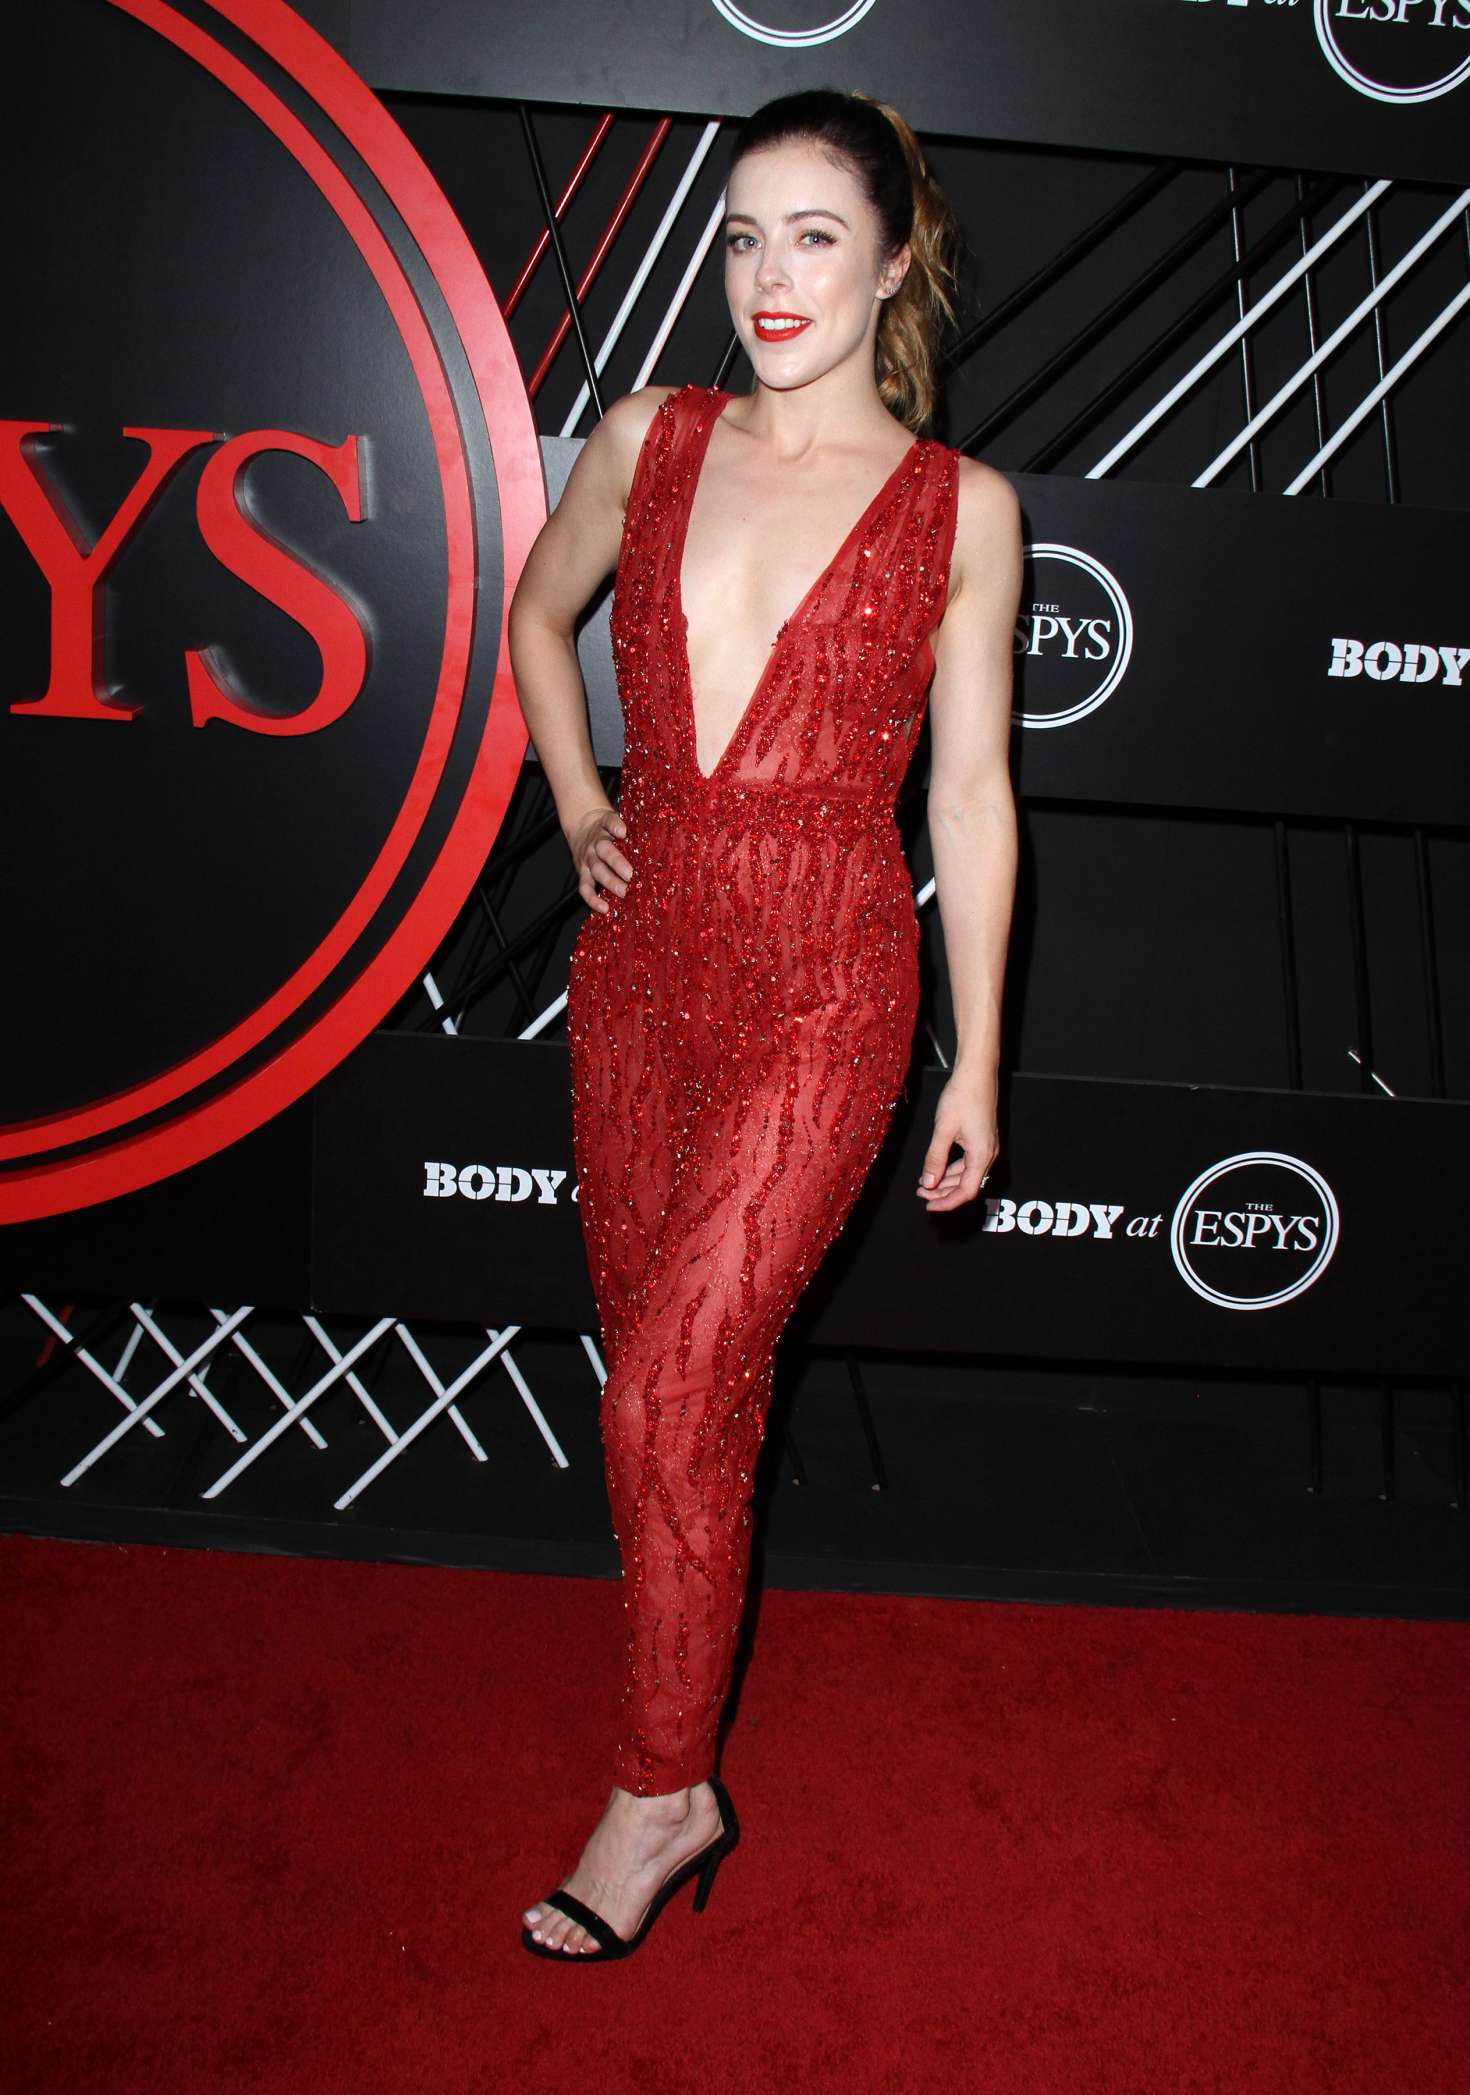 Ashley Wagner: BODY at ESPYS party 2017 -27 - GotCeleb